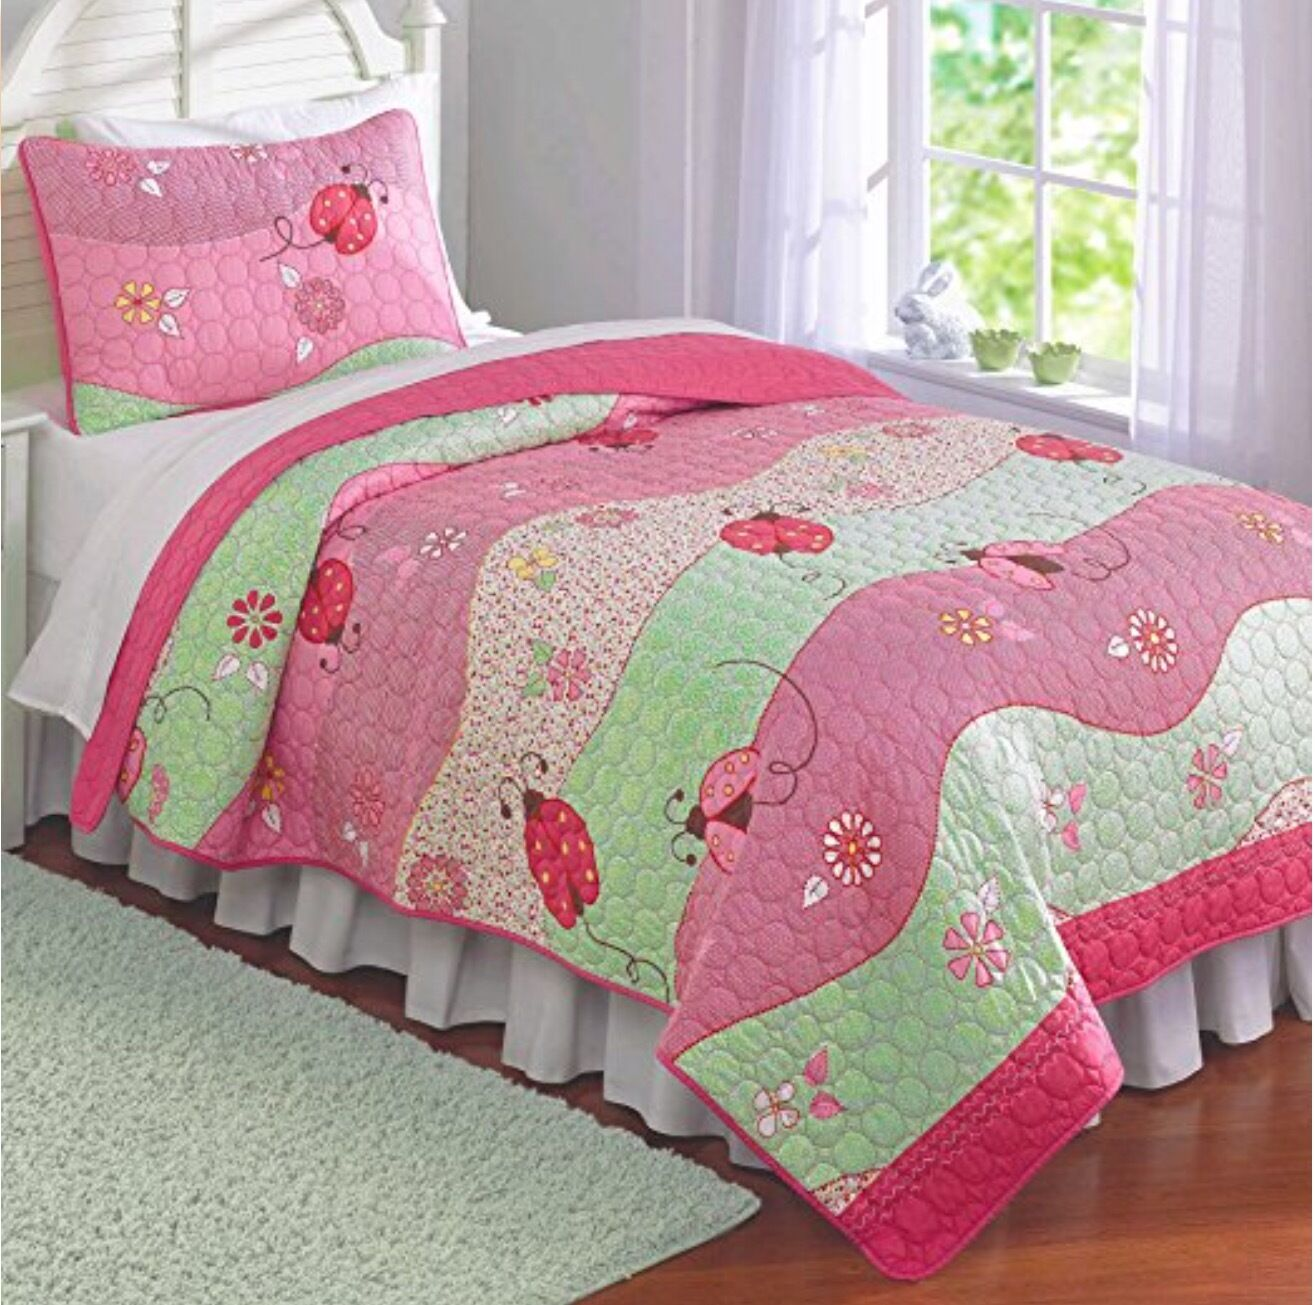 Laura Hart Kids 3 PC Complet Queen Duvet Shams Set  FLORAL les coccinelles rose  Nouveau